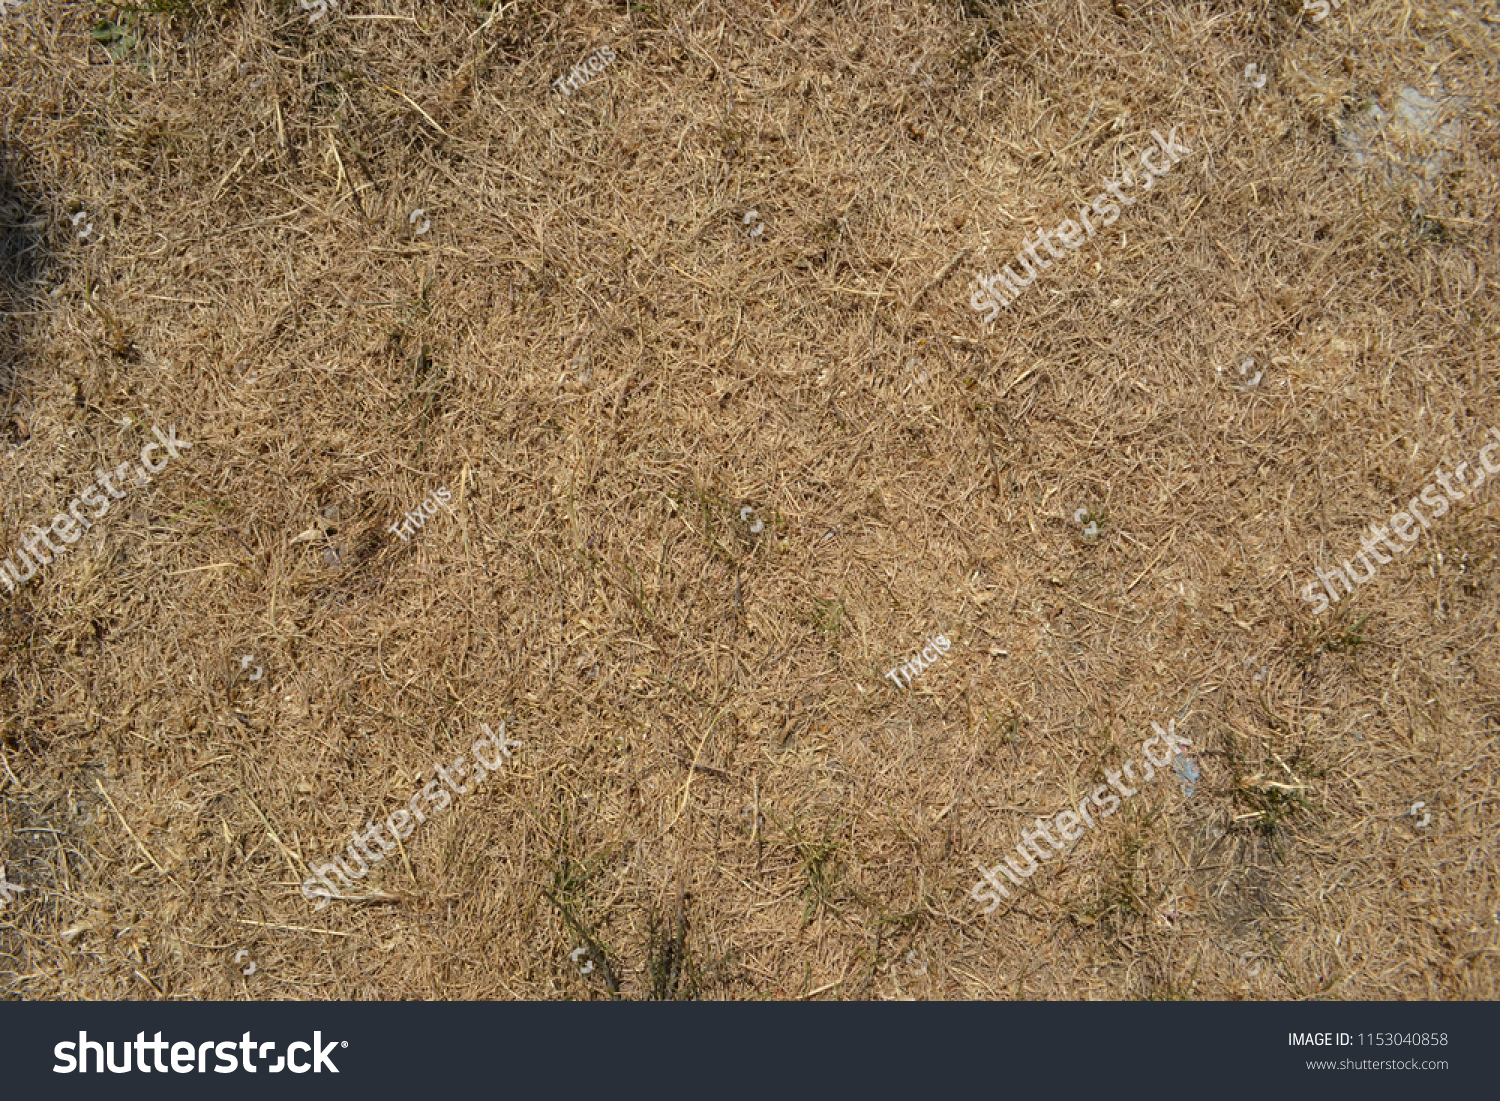 Closeup Photograph Parched Grass Suburban Lawn Stock Photo (Royalty ...